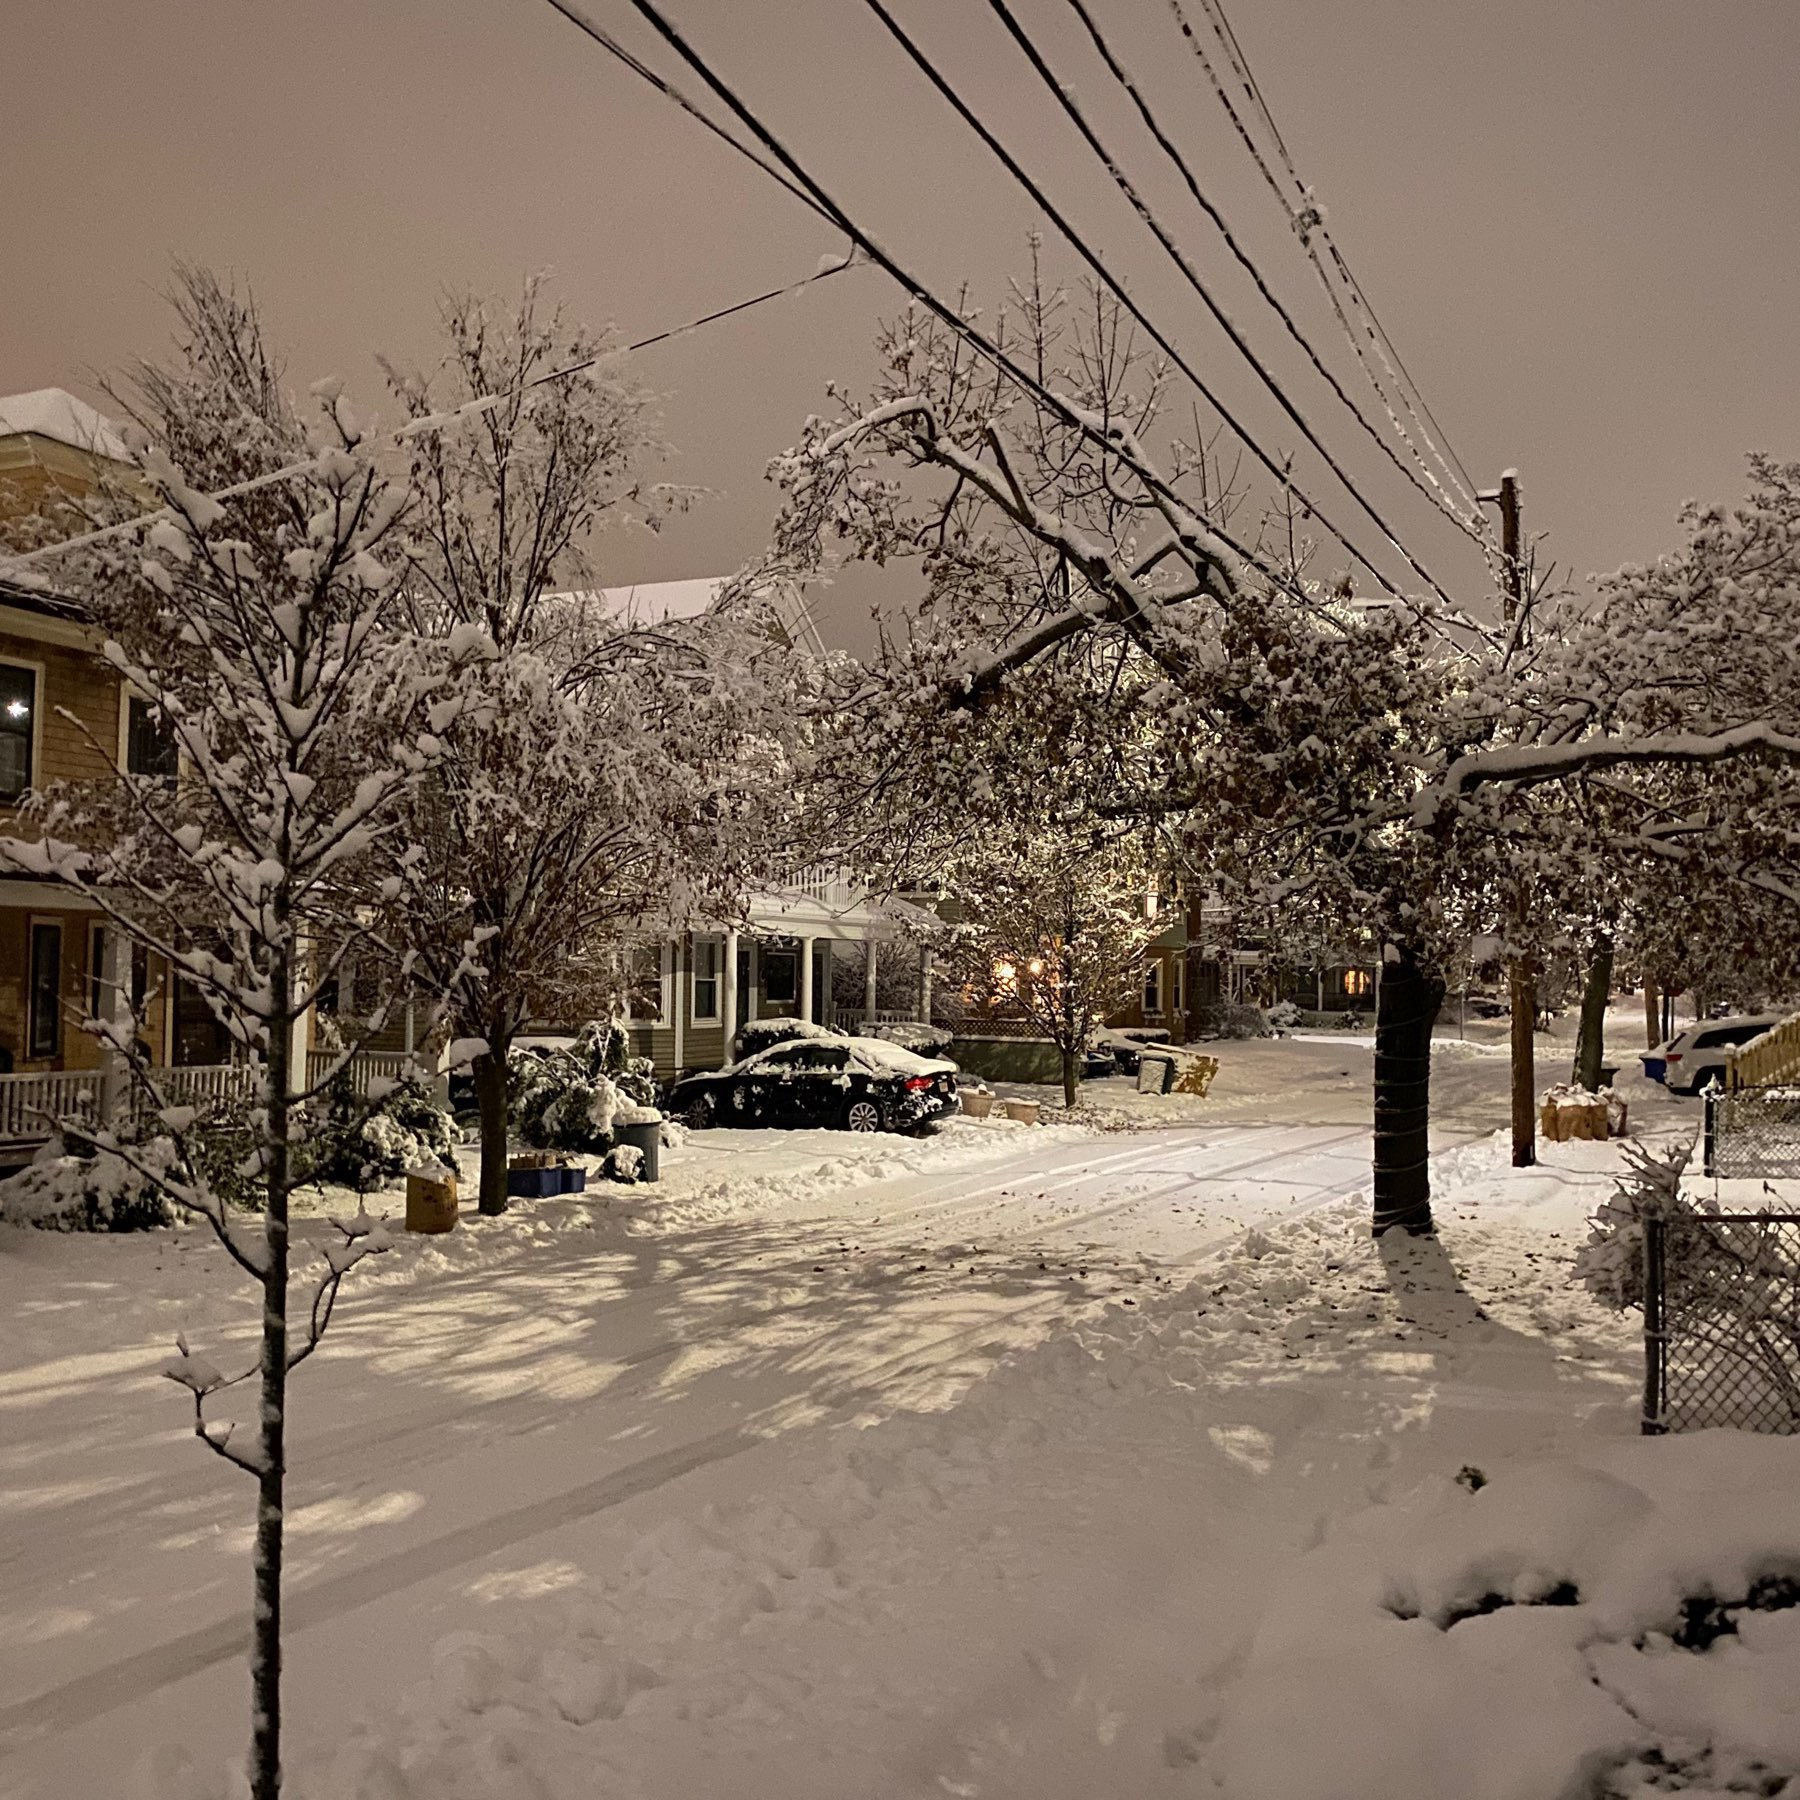 snow covered street with houses and powerlinea